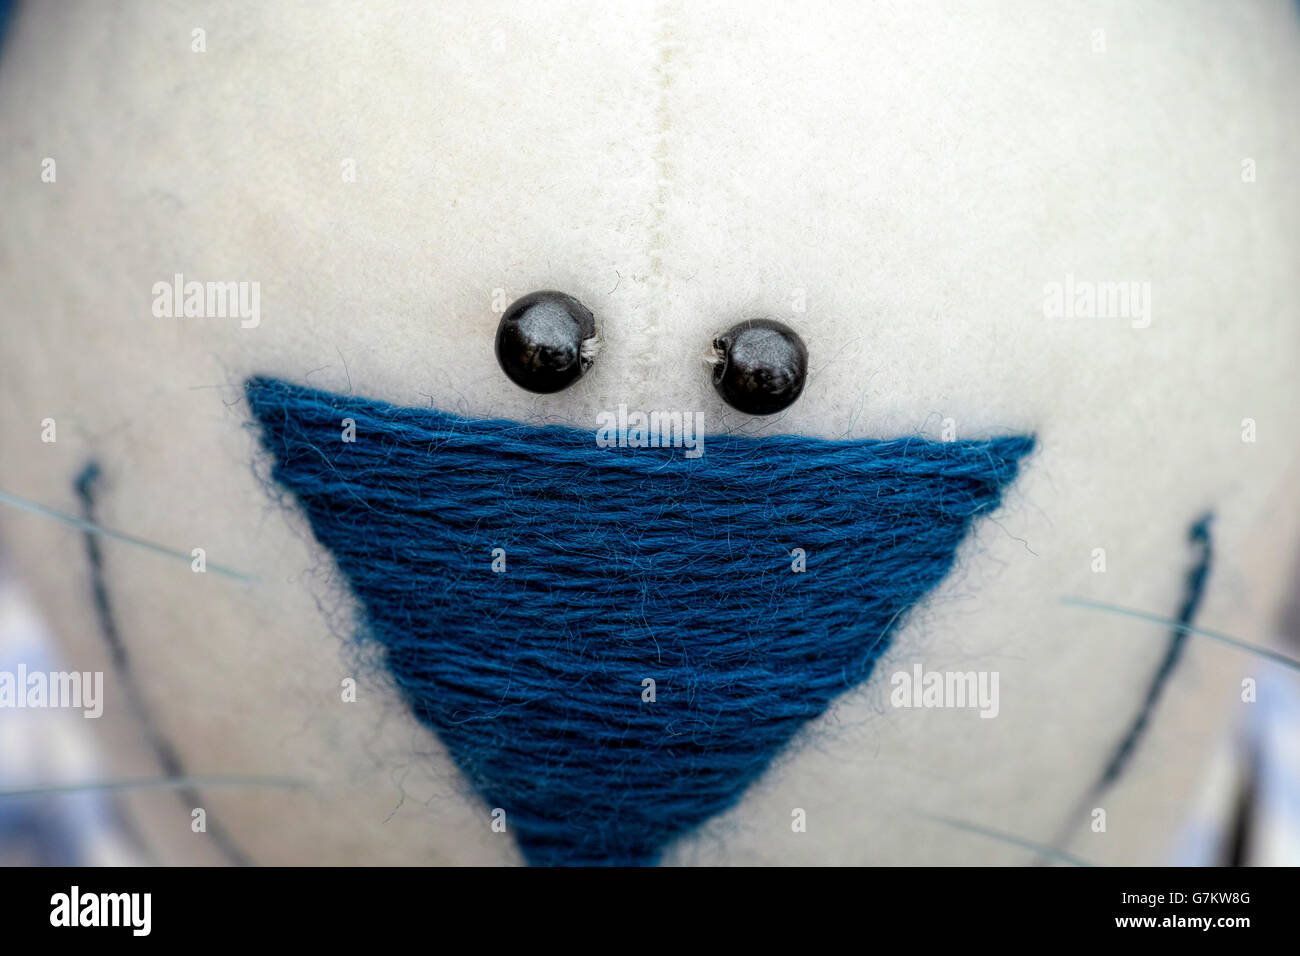 Closeup of toy face with blue embroidered nose and black bead eyes - Stock Image